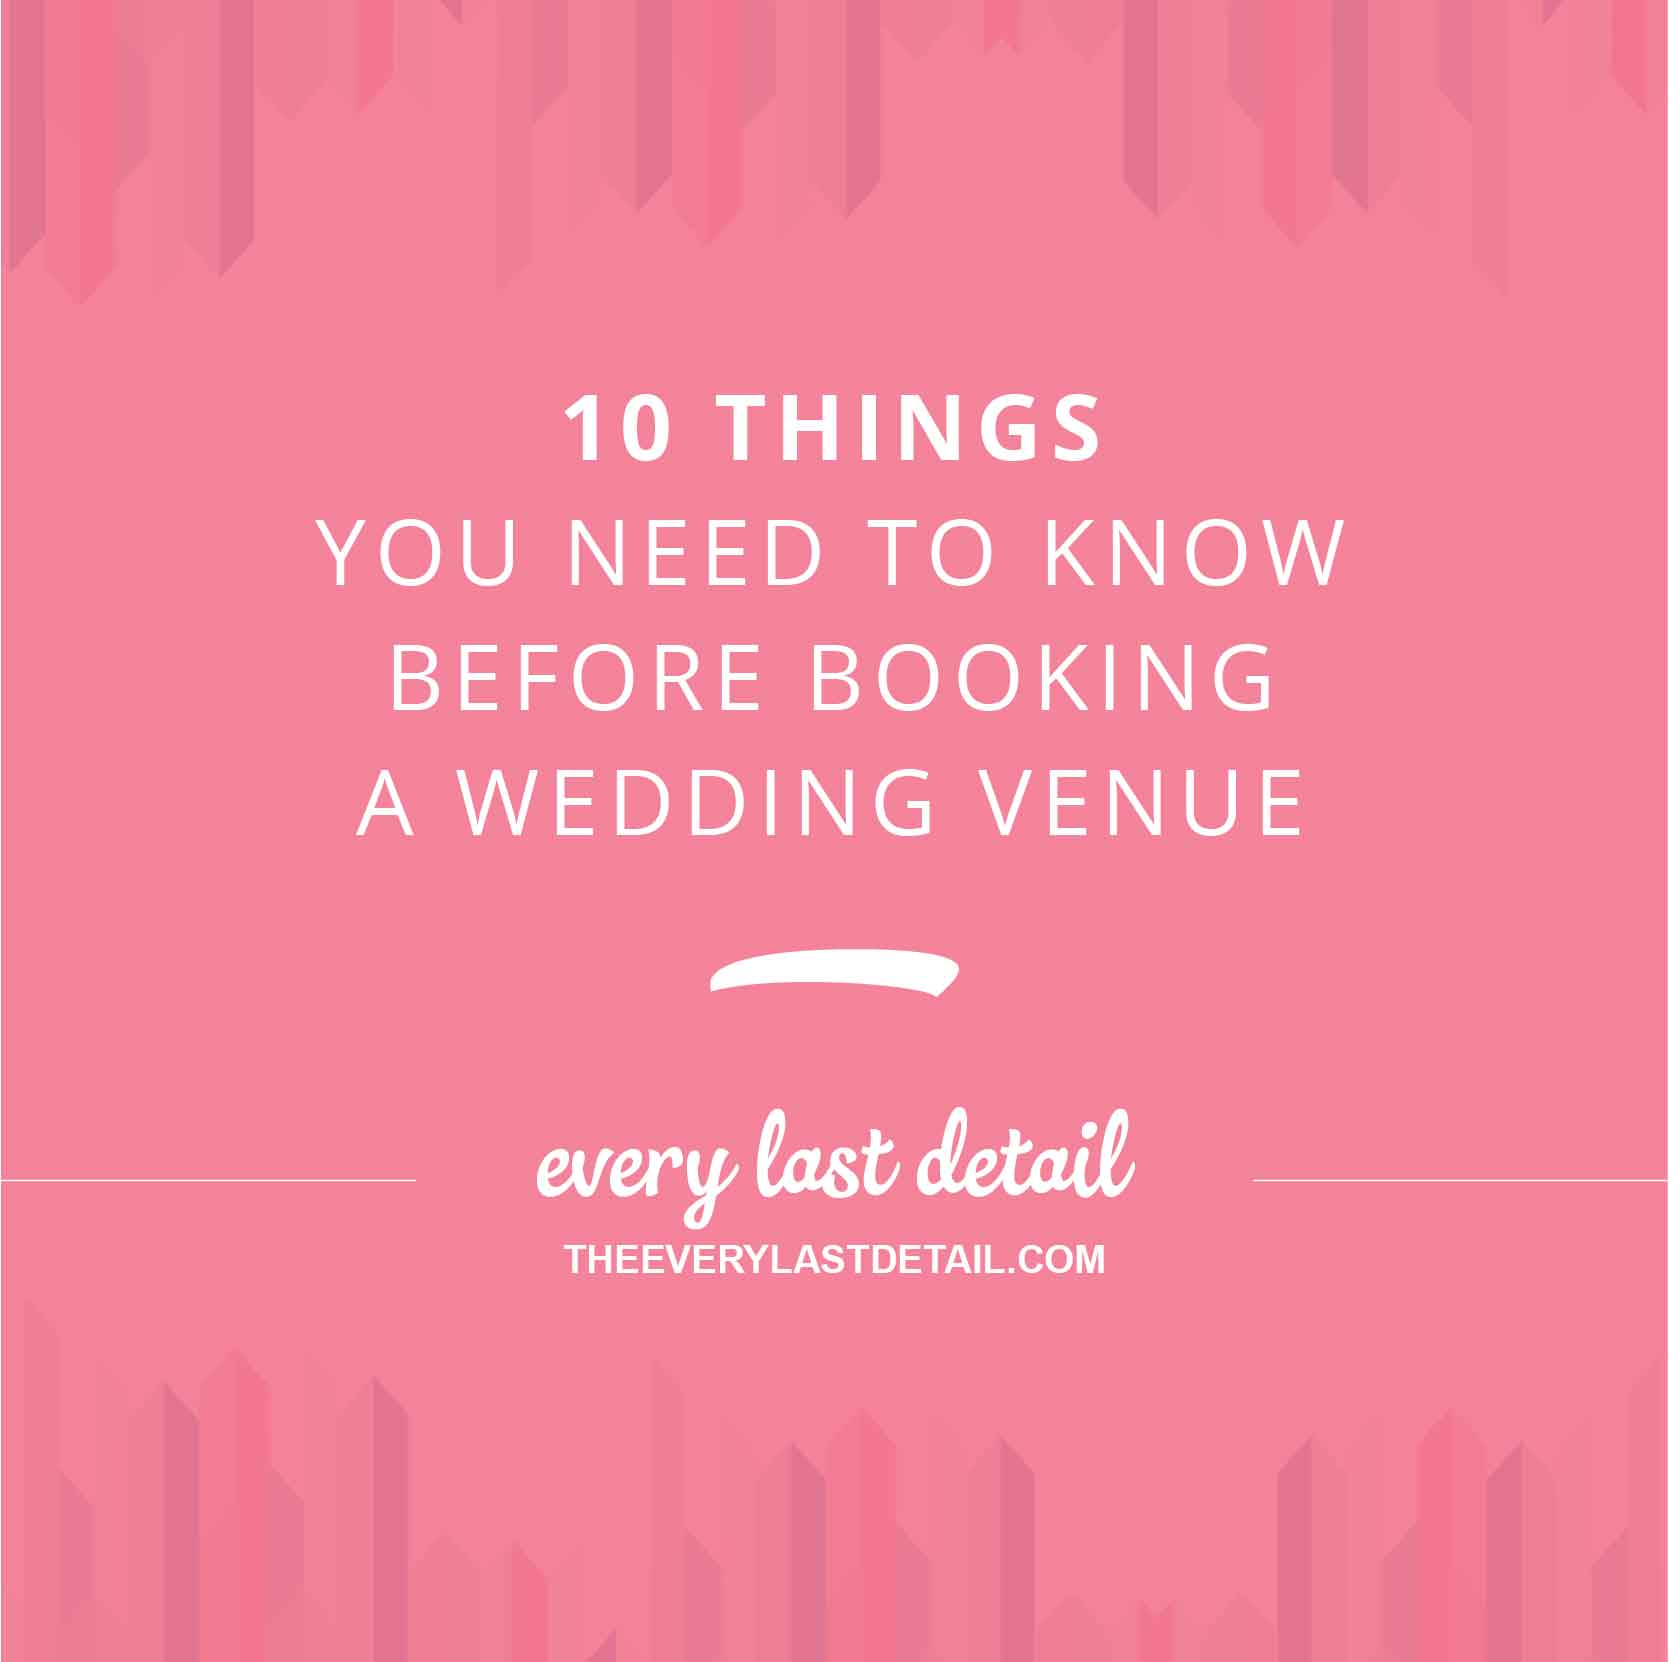 10 Things You Need To Know Before Booking A Wedding Venue Every